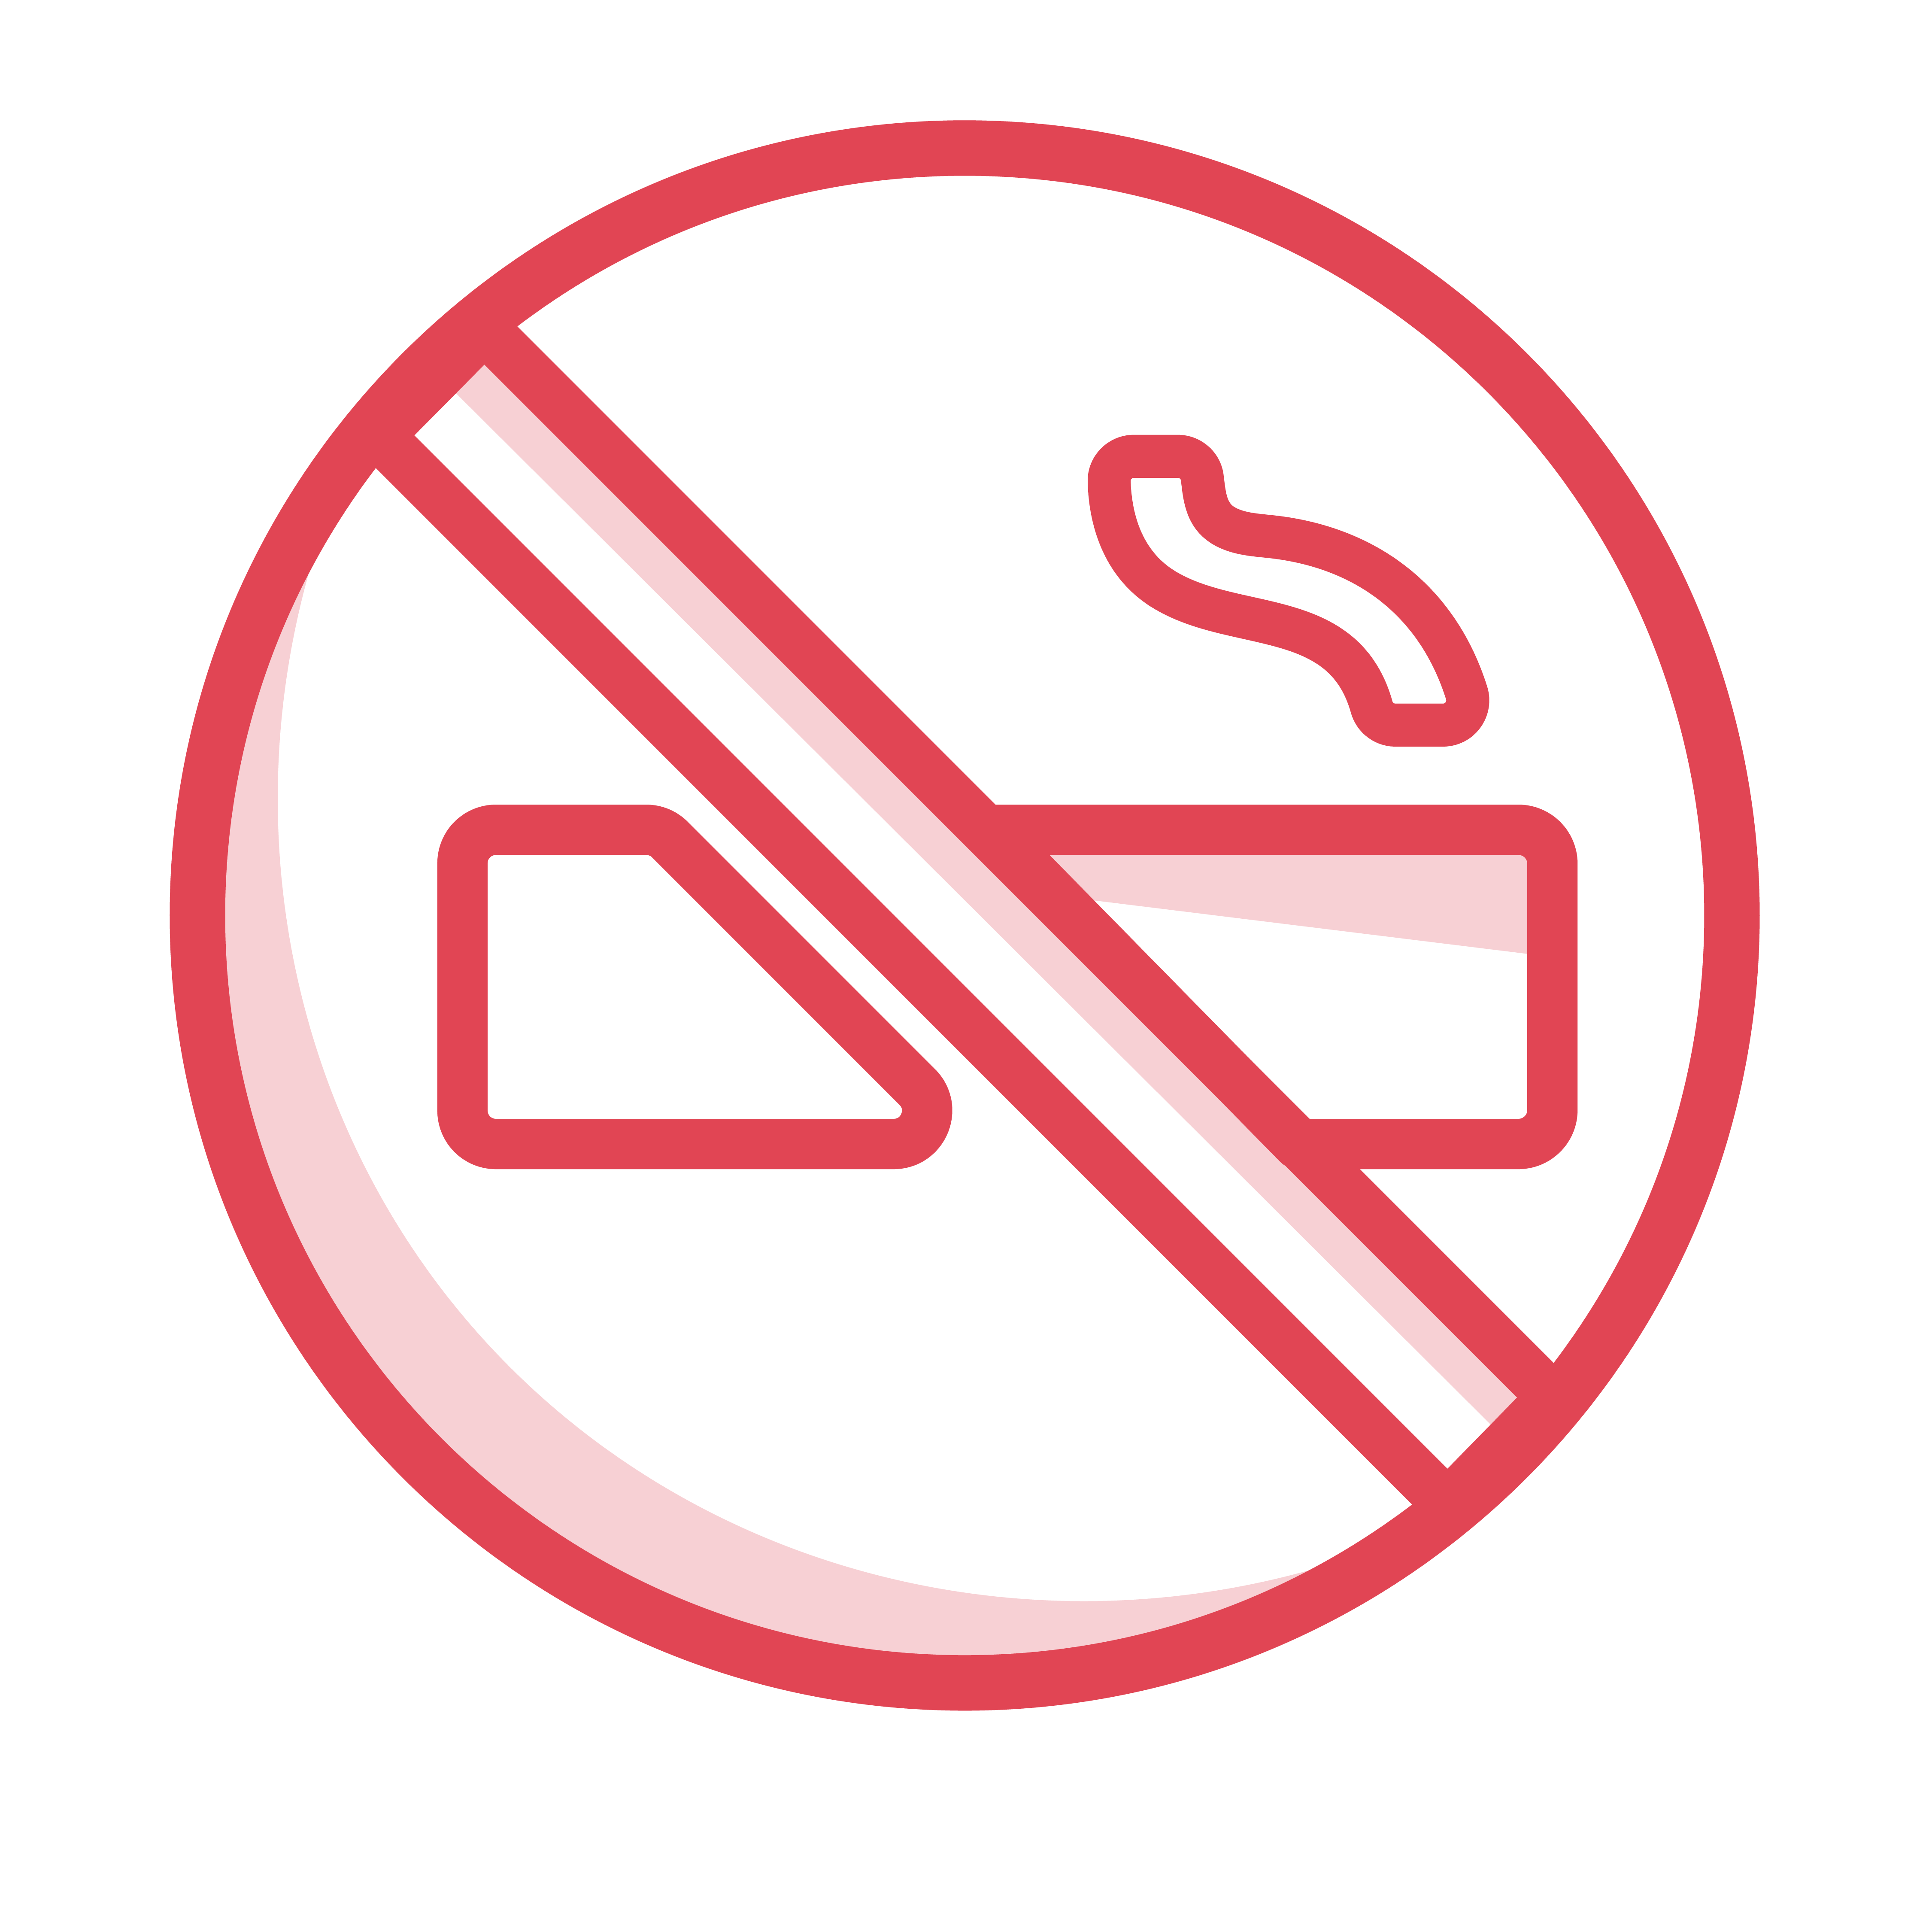 Icon of a no smoking symbol